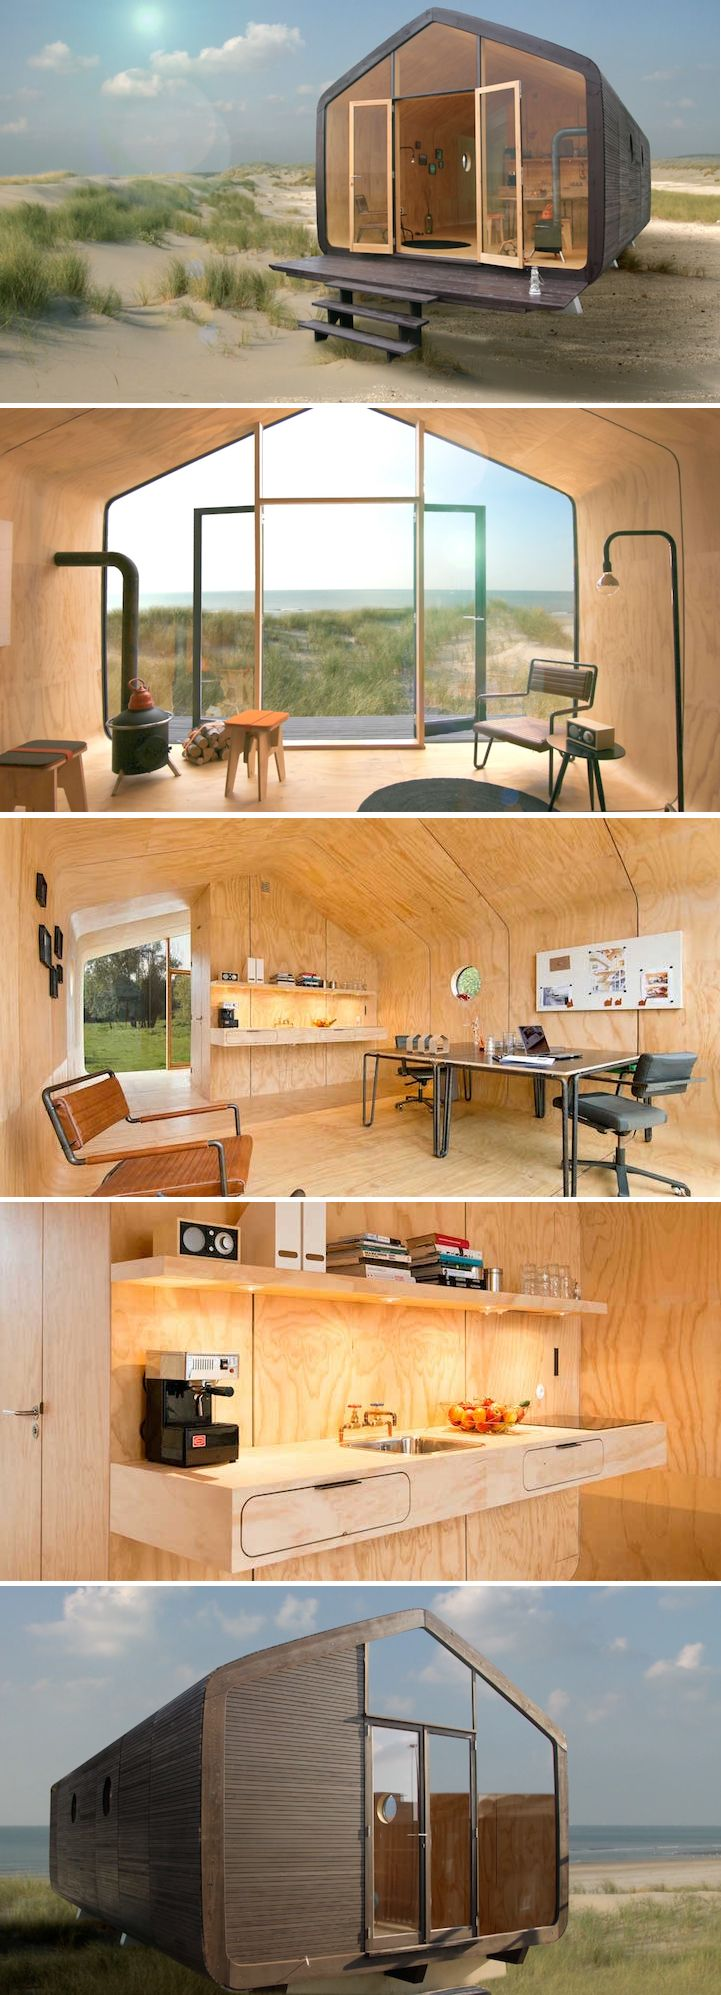 Designers Use Recycled Cardboard To Create Eco Friendly Modular Homes